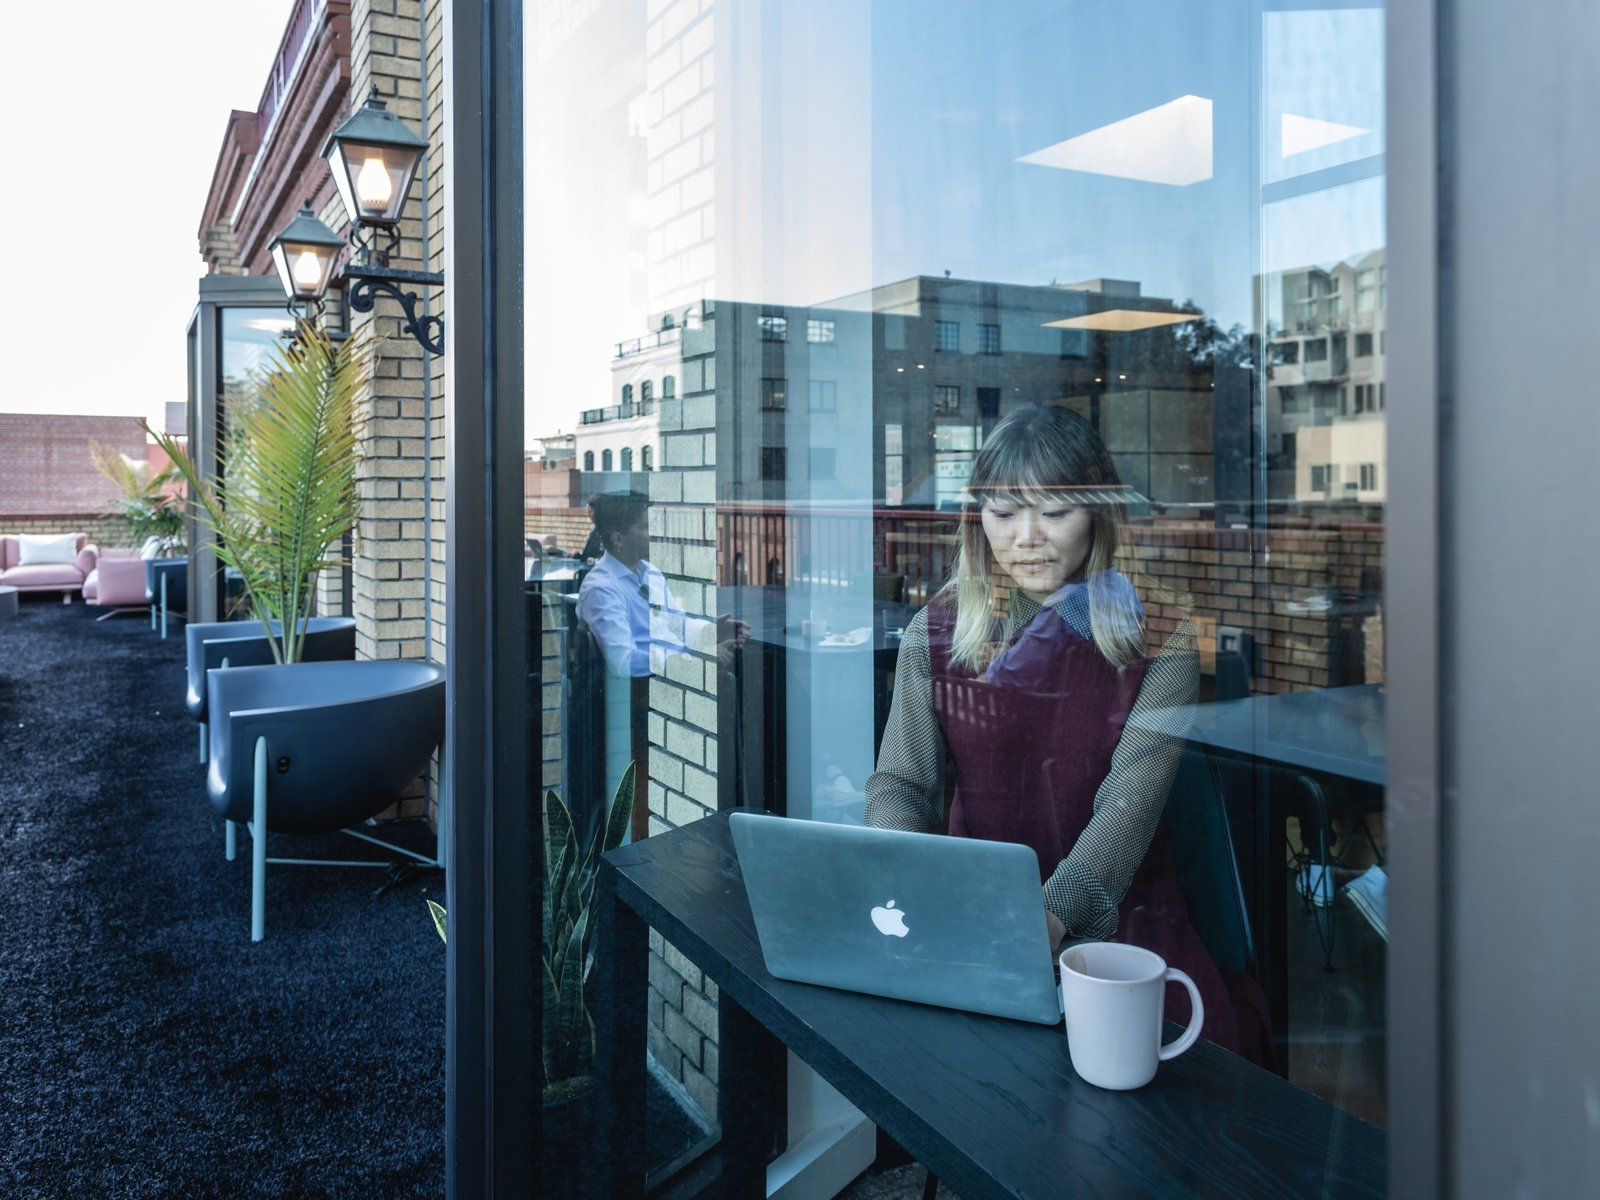 Jenny Xie, executive web editor, works in a phone booth overlooking the terrace. (Sothear Nuon)